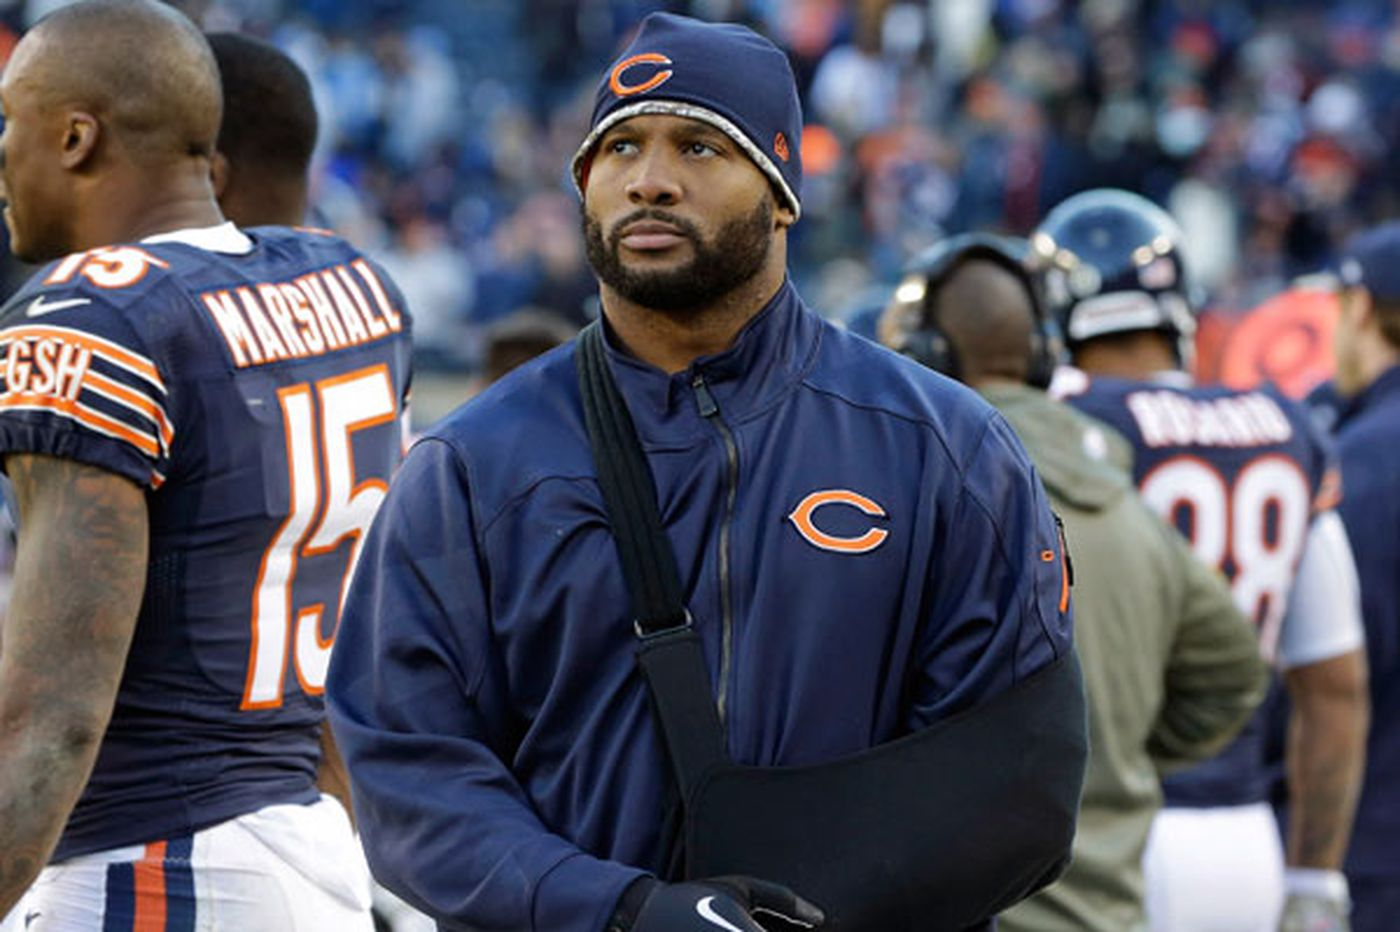 Bears' Briggs anxious to play against Eagles